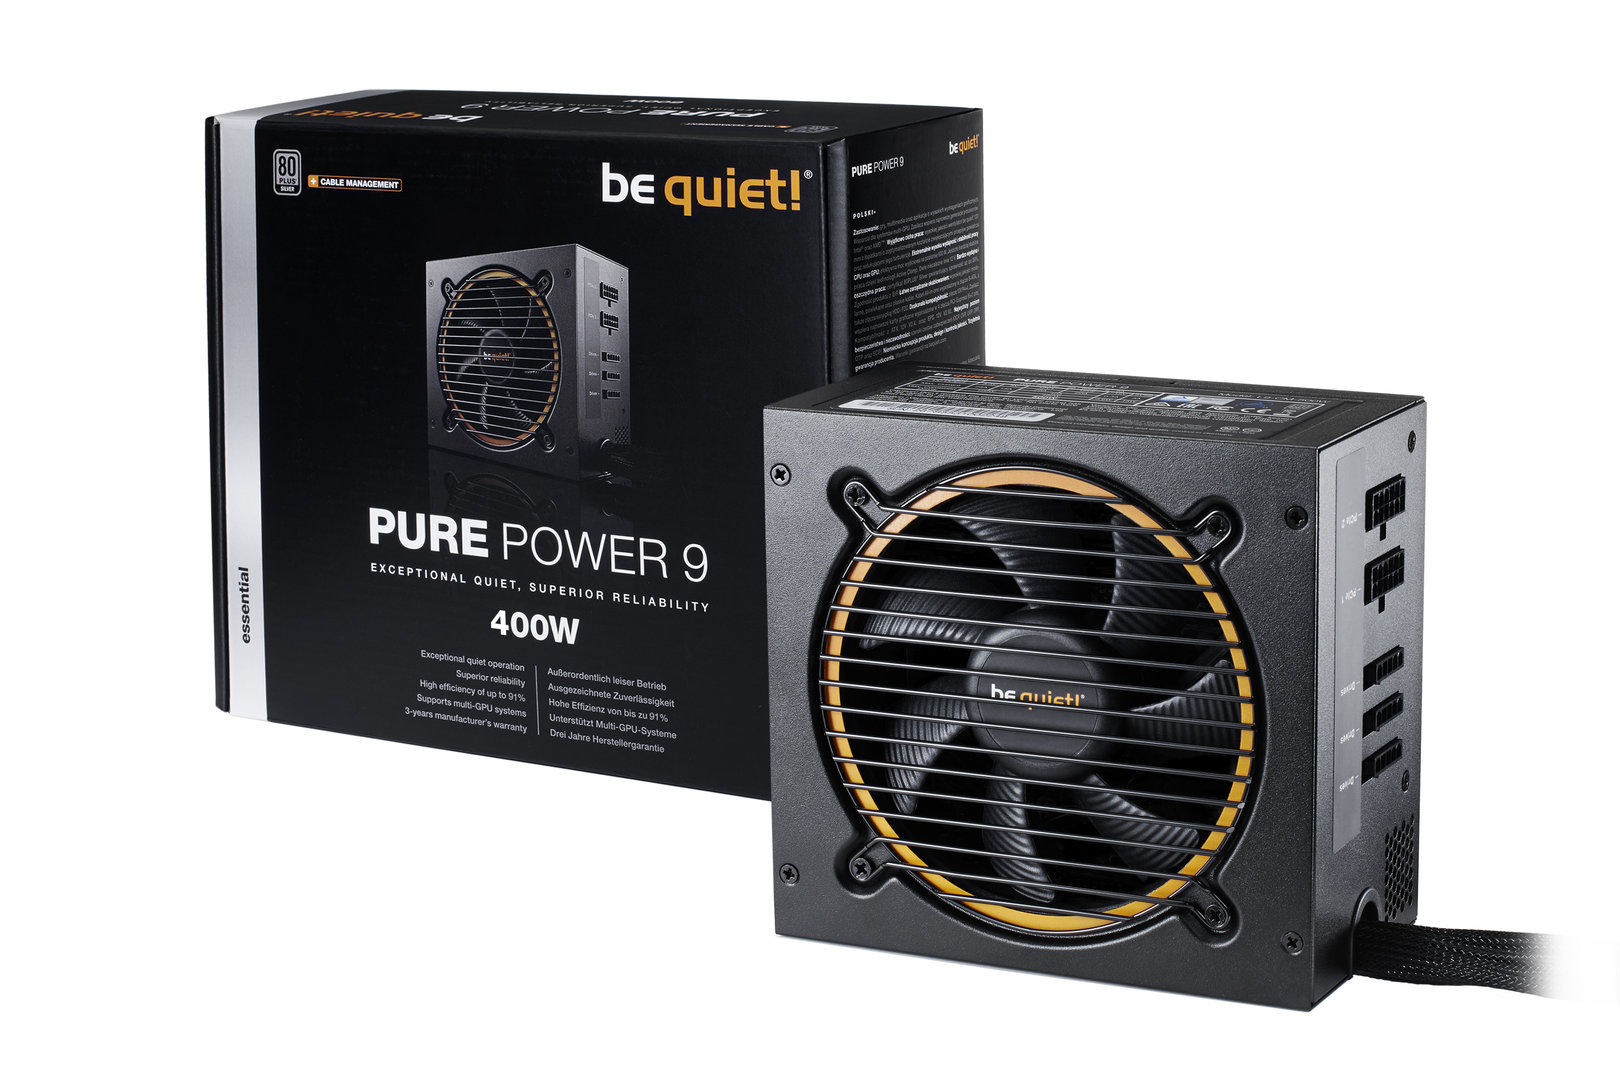 be quiet! Pure Power 9 400W CM